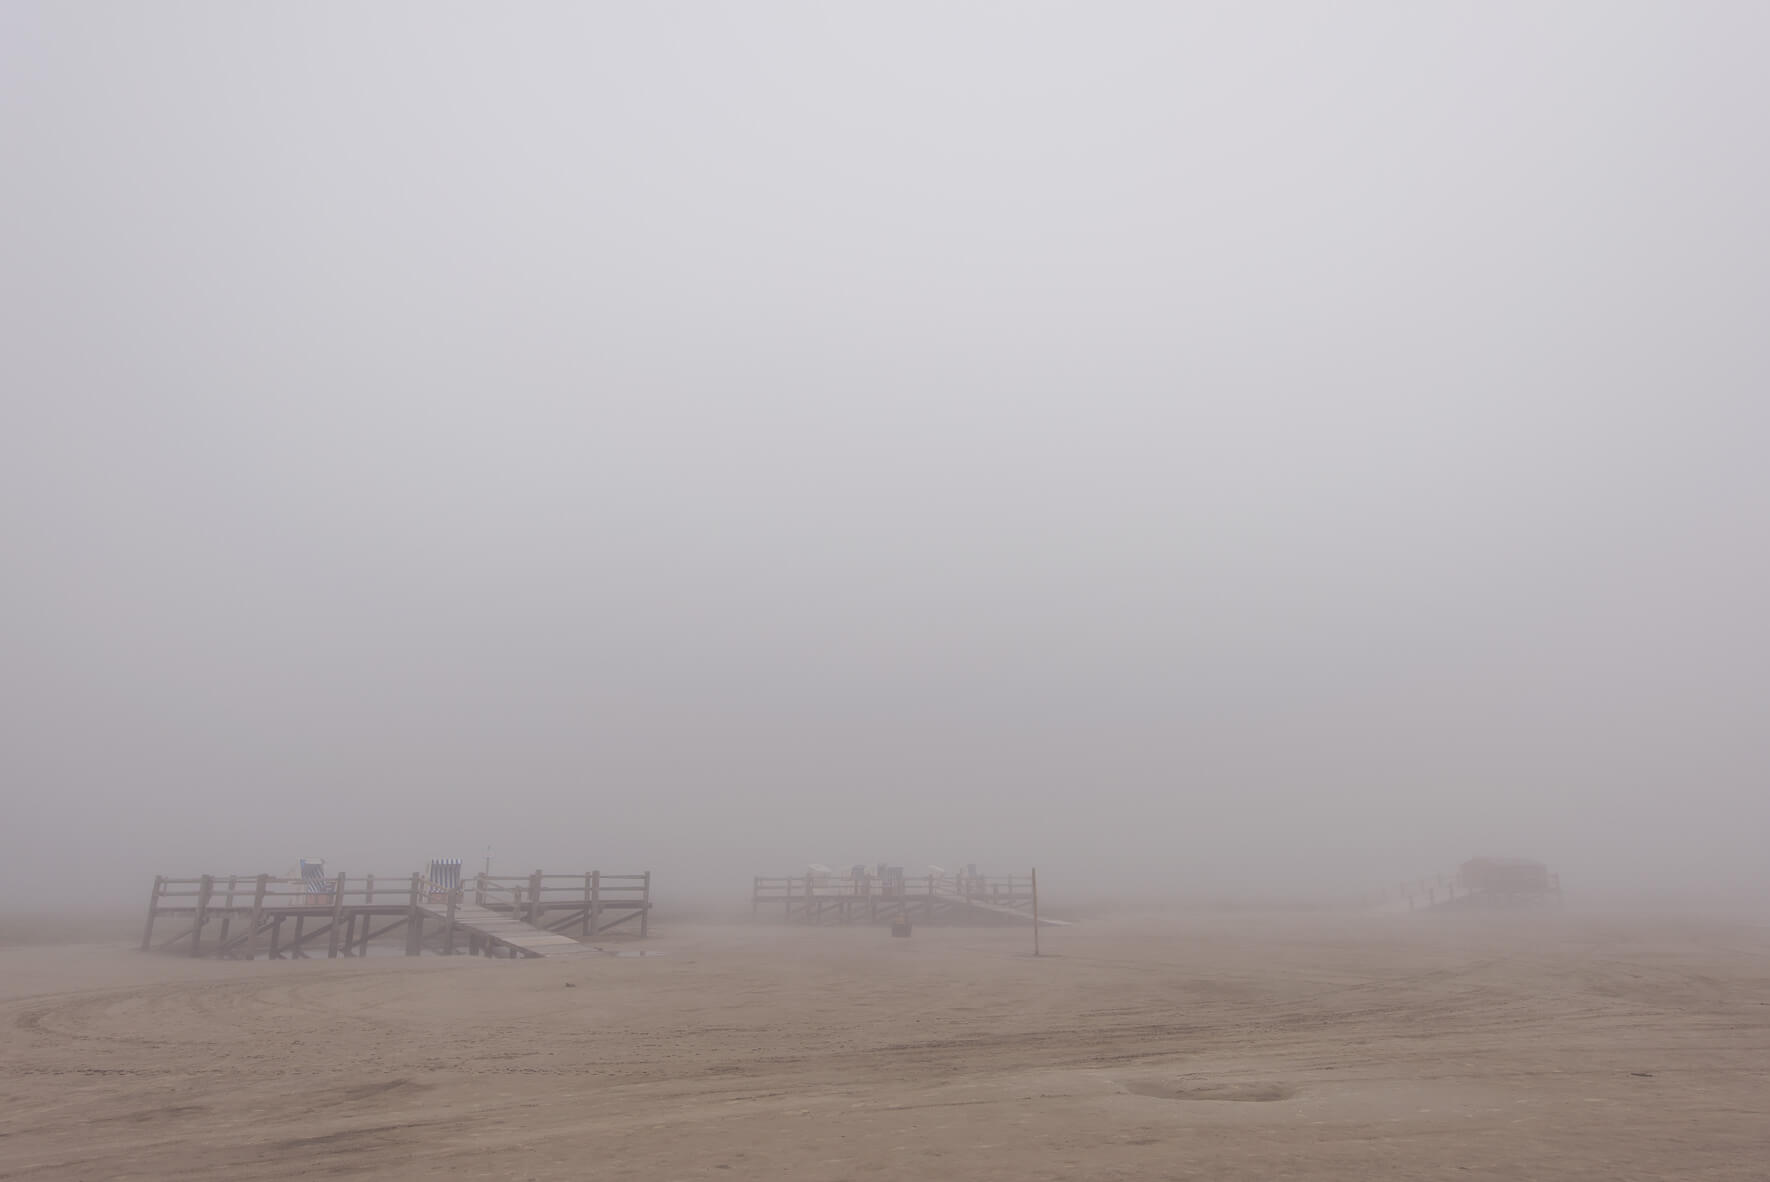 Fog over the beach of Sankt Peter-Ording with beach chairs